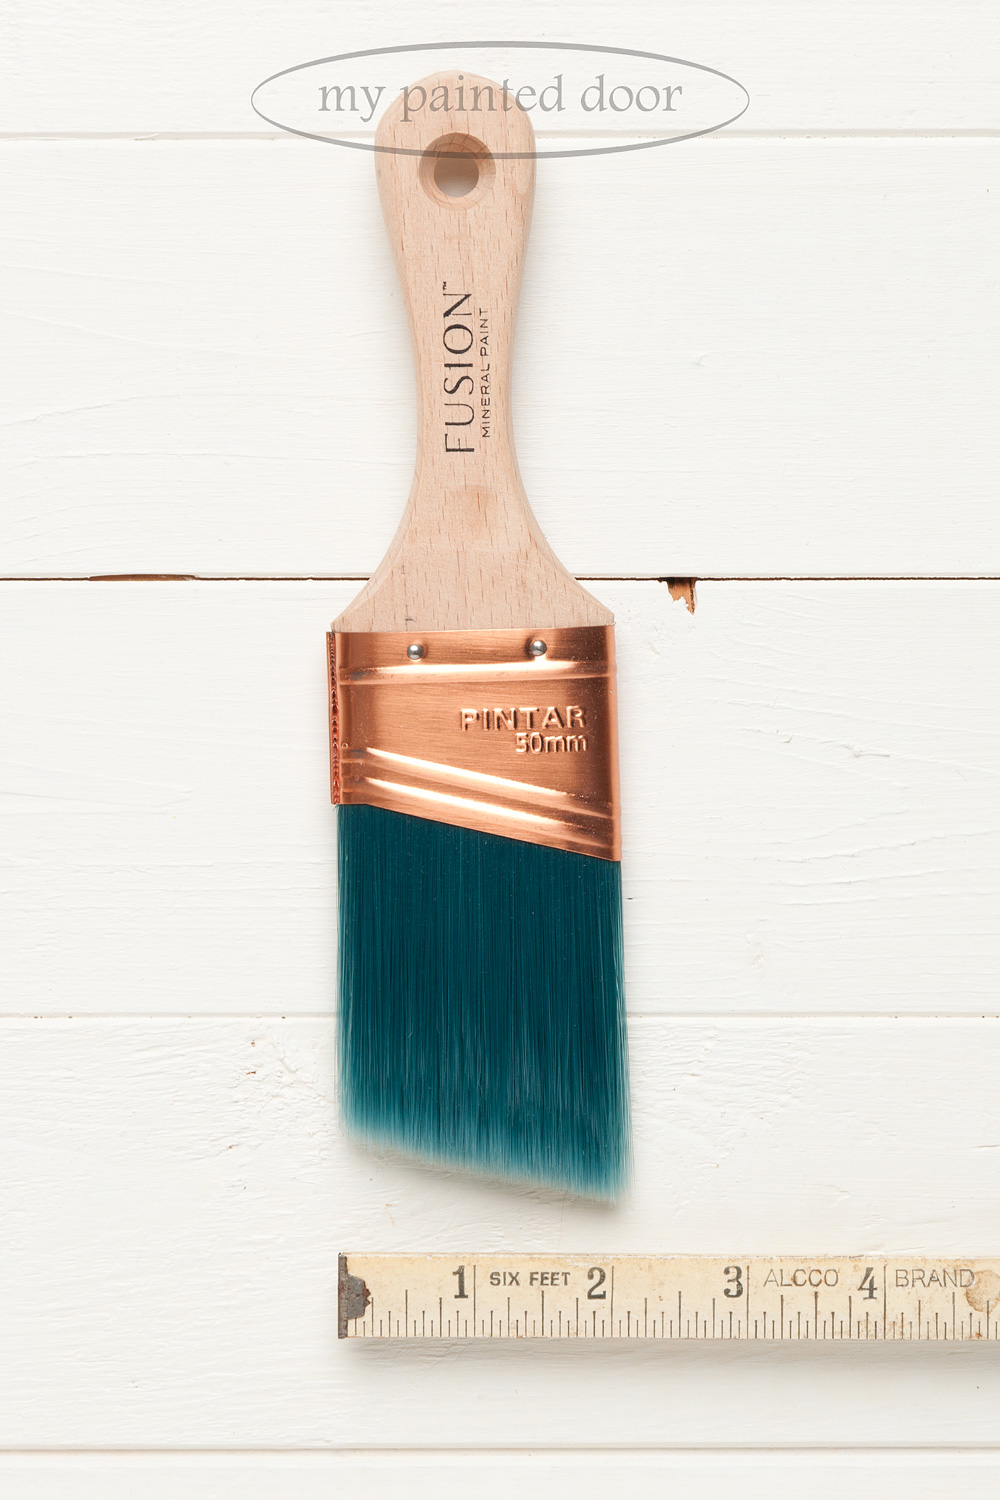 "Fusion Mineral Paint 2"" synthetic angled brush is now available at My Painted Door."